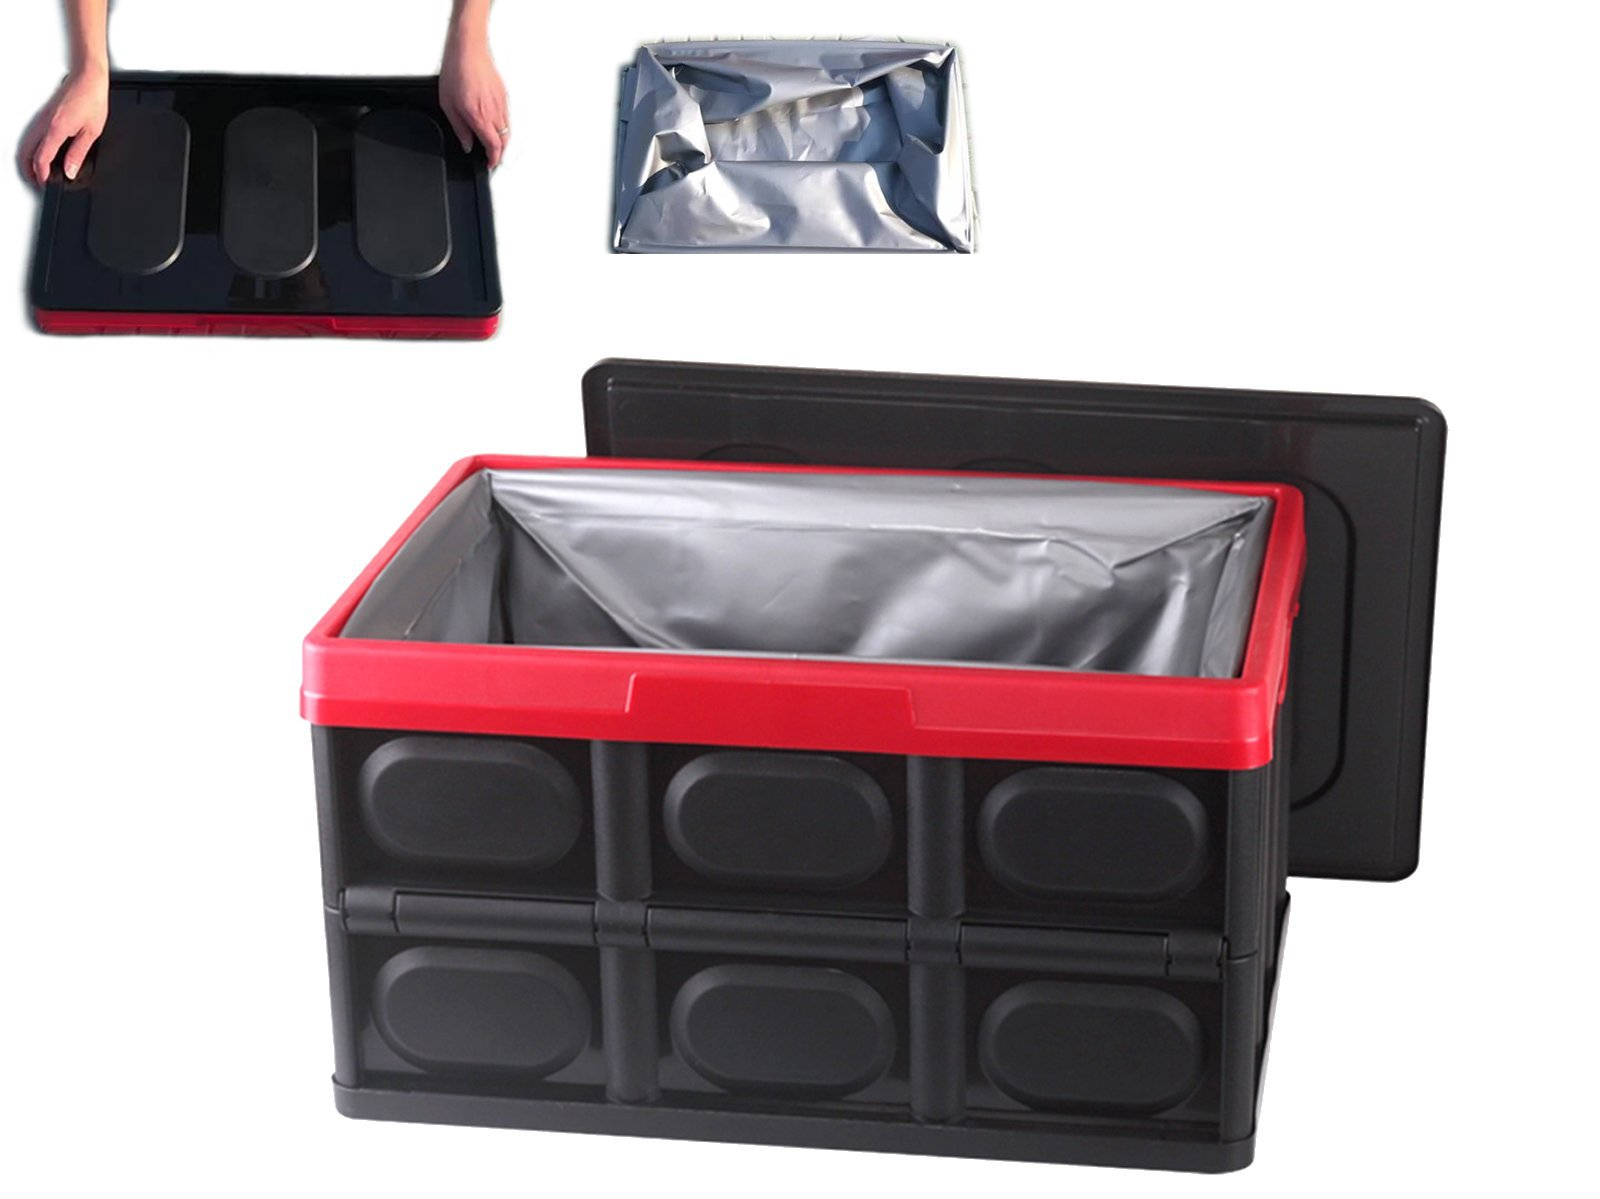 Foldable & Portable Storage Box incl. Waterproof Liner (55 Liters) - Torque Alliance